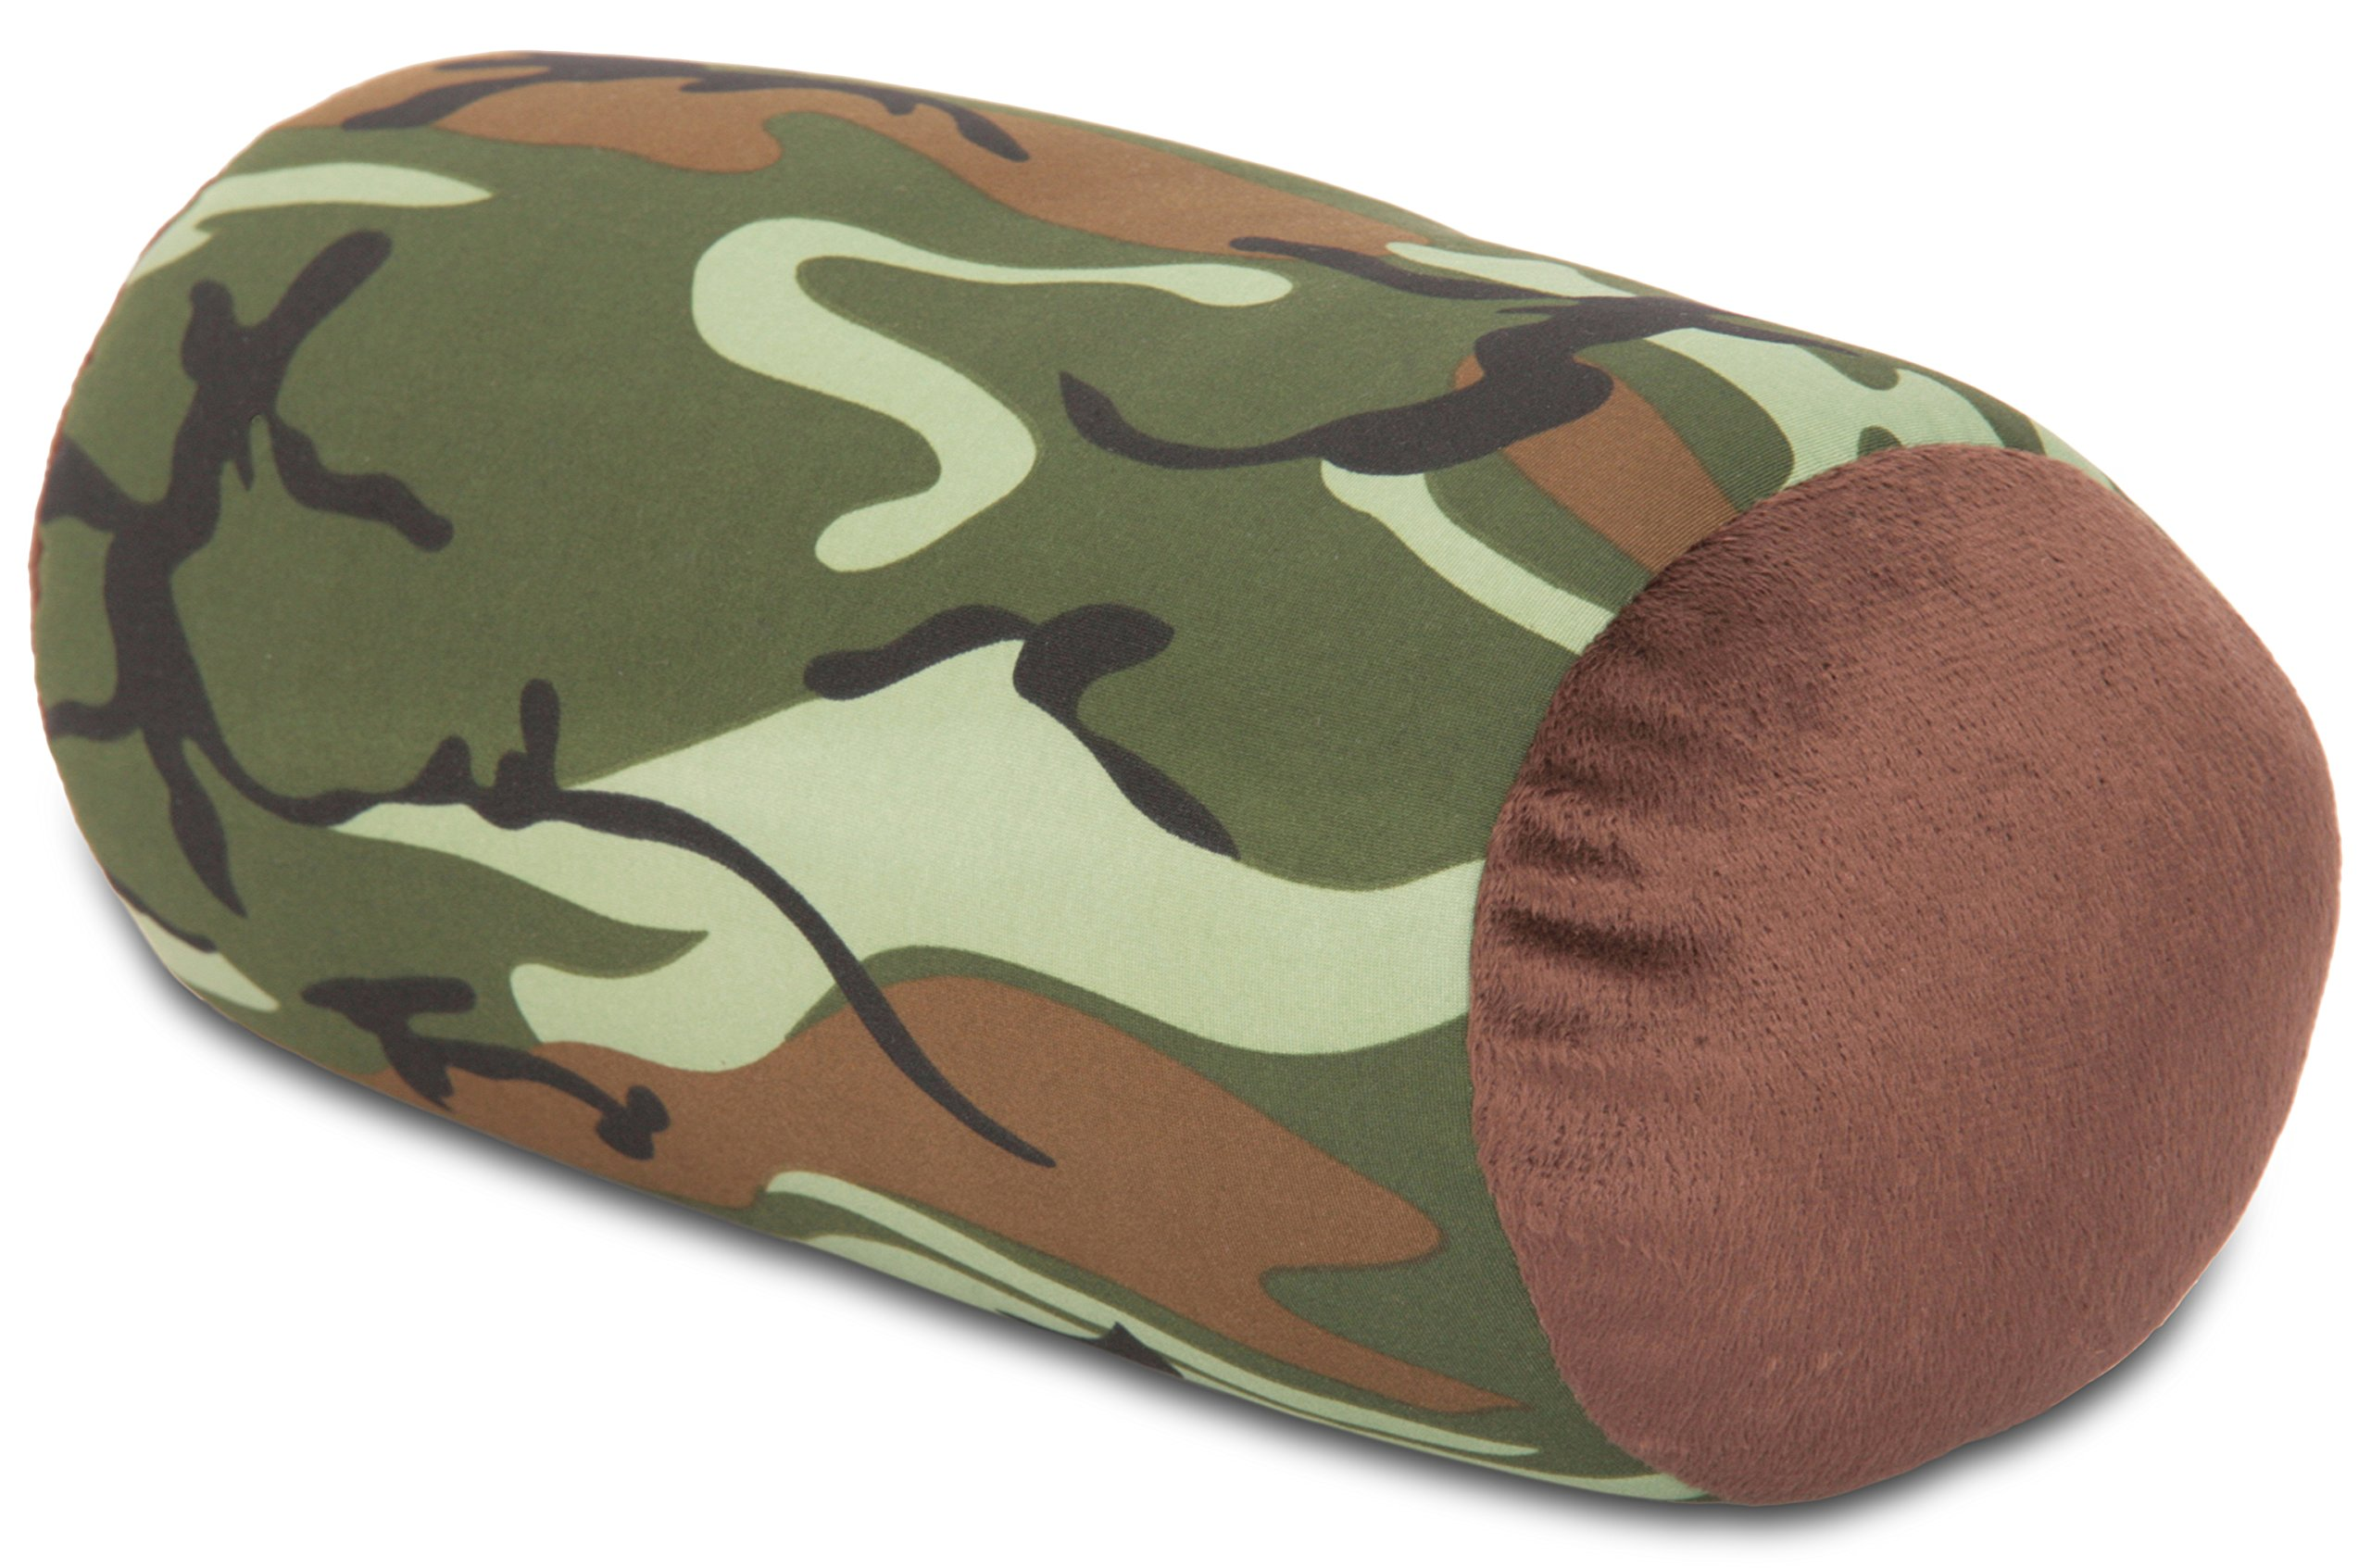 """Mooshi Squish Mini Microbead Jelly Bean Bed Pillow (12"""" x 7"""") – Airy Squishy Soft Microbeads – Eight Wild Fun Colors to Choose From – Cuddly and Fun Dormroom Accessory – Bed Pillow, Camouflage"""